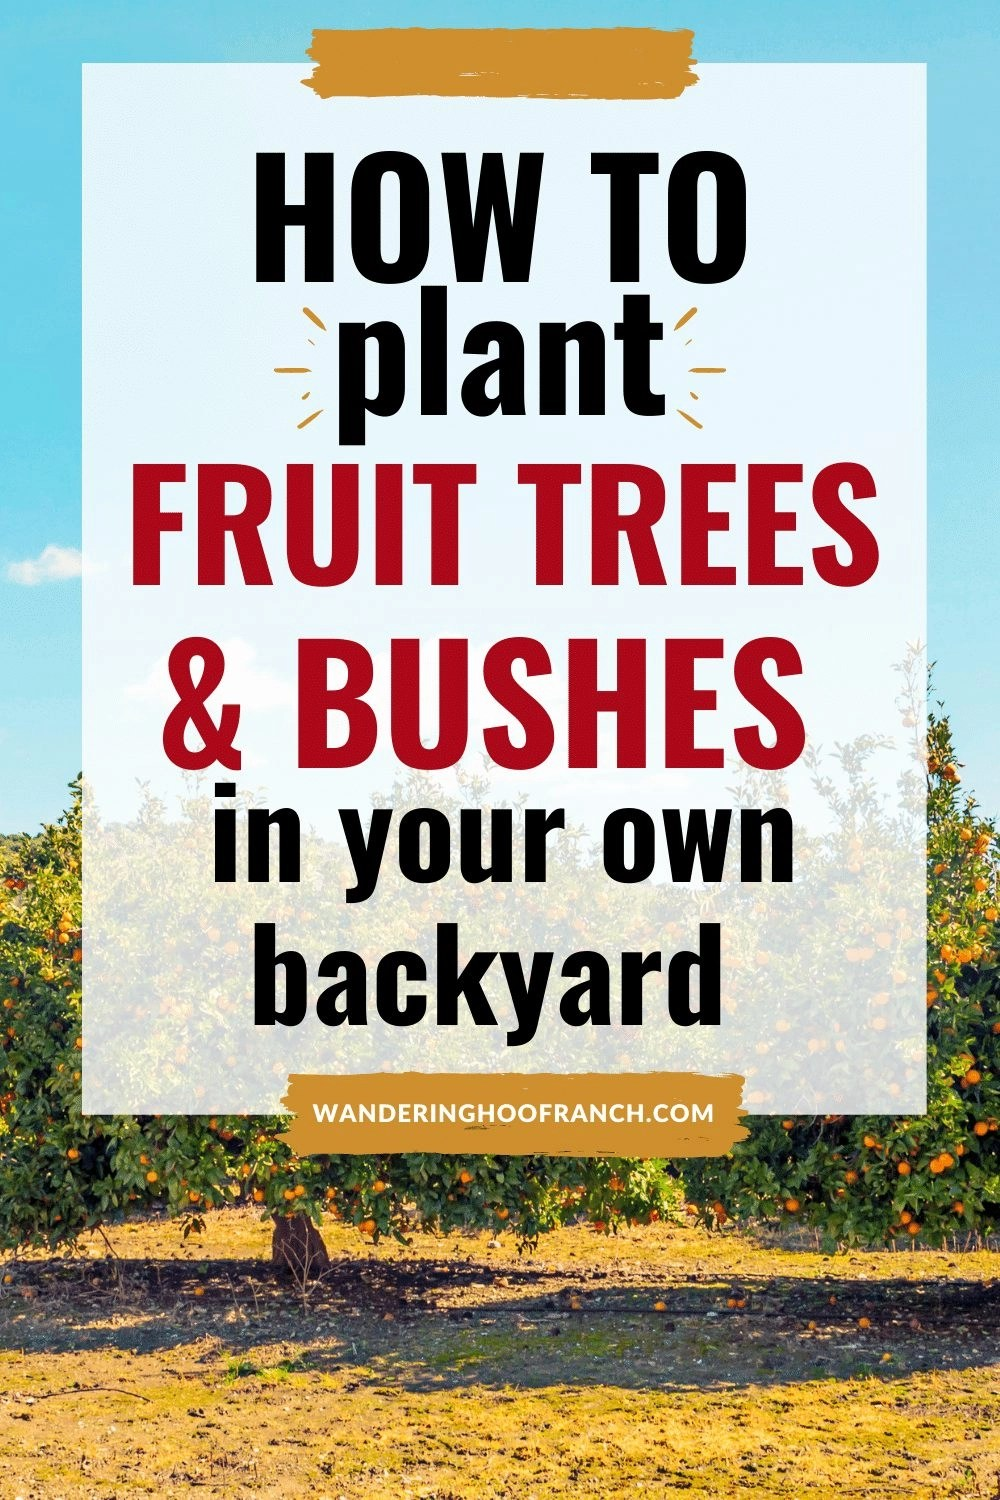 how to grow fruit trees and bushes in your own backyard small fruit orchard image with text overlay